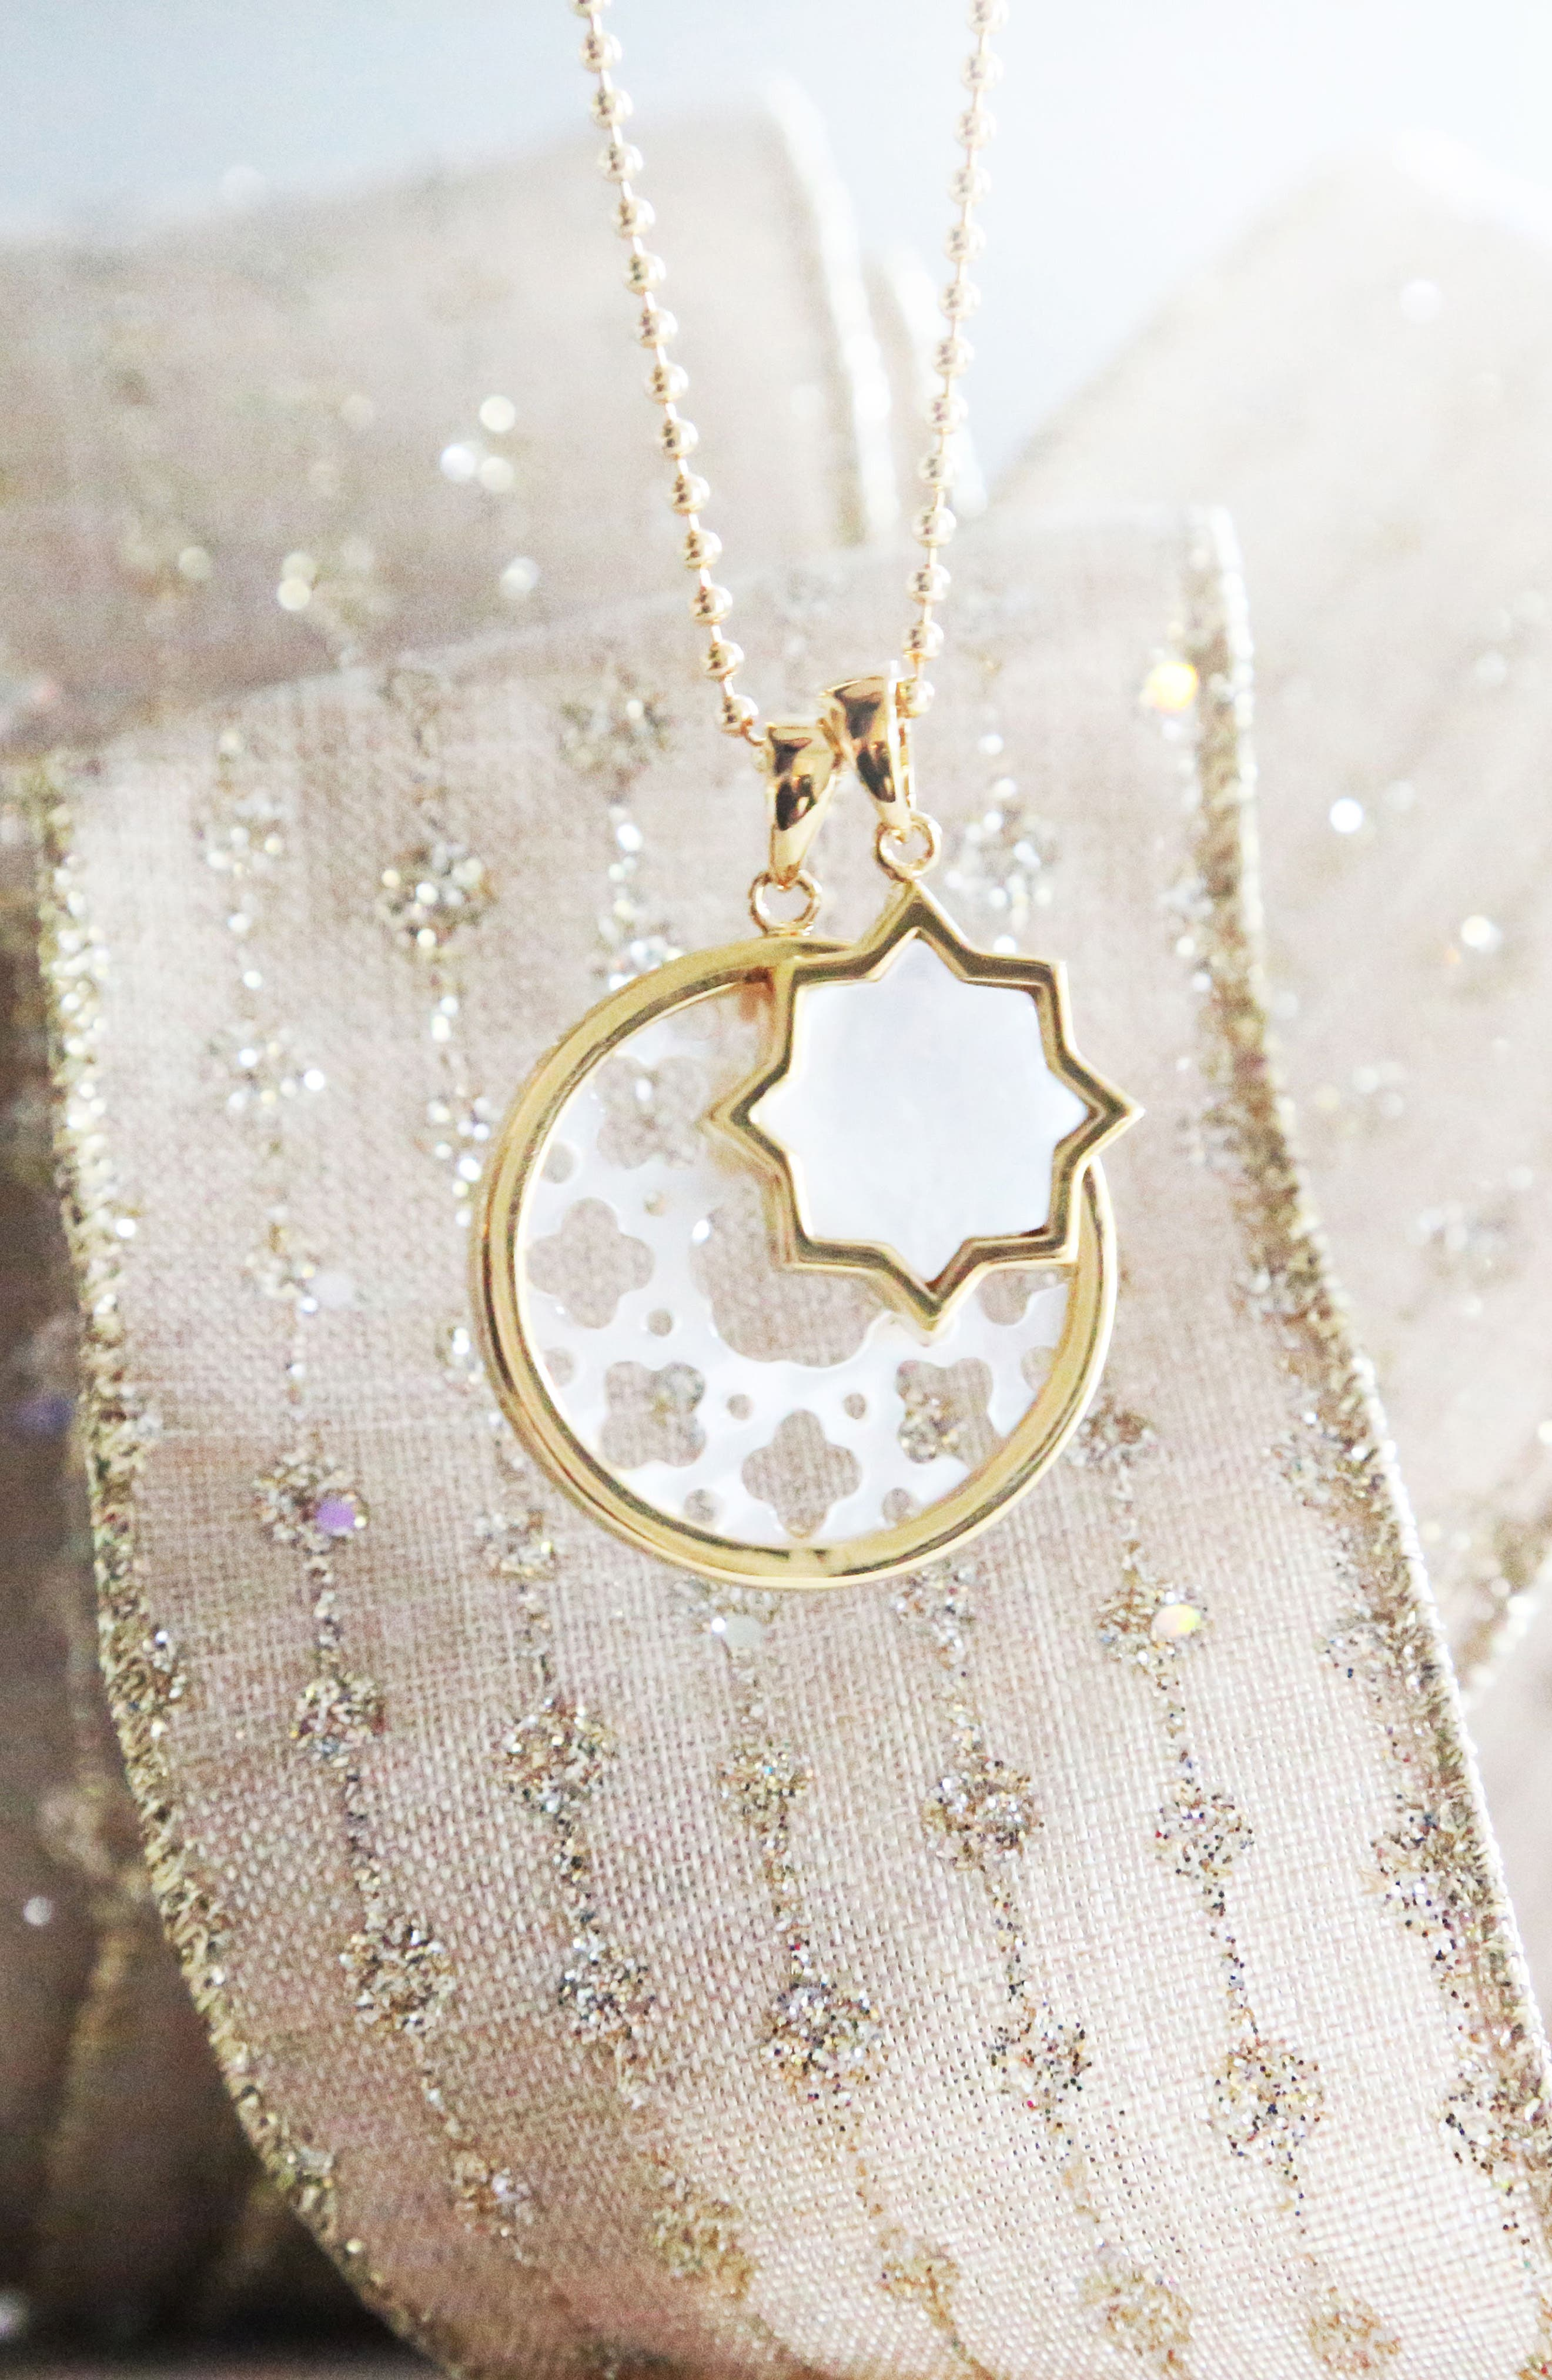 Carlotta Mother-of-Pearl Long Pendant Necklace,                             Alternate thumbnail 2, color,                             Gold - Mother Of Pearl